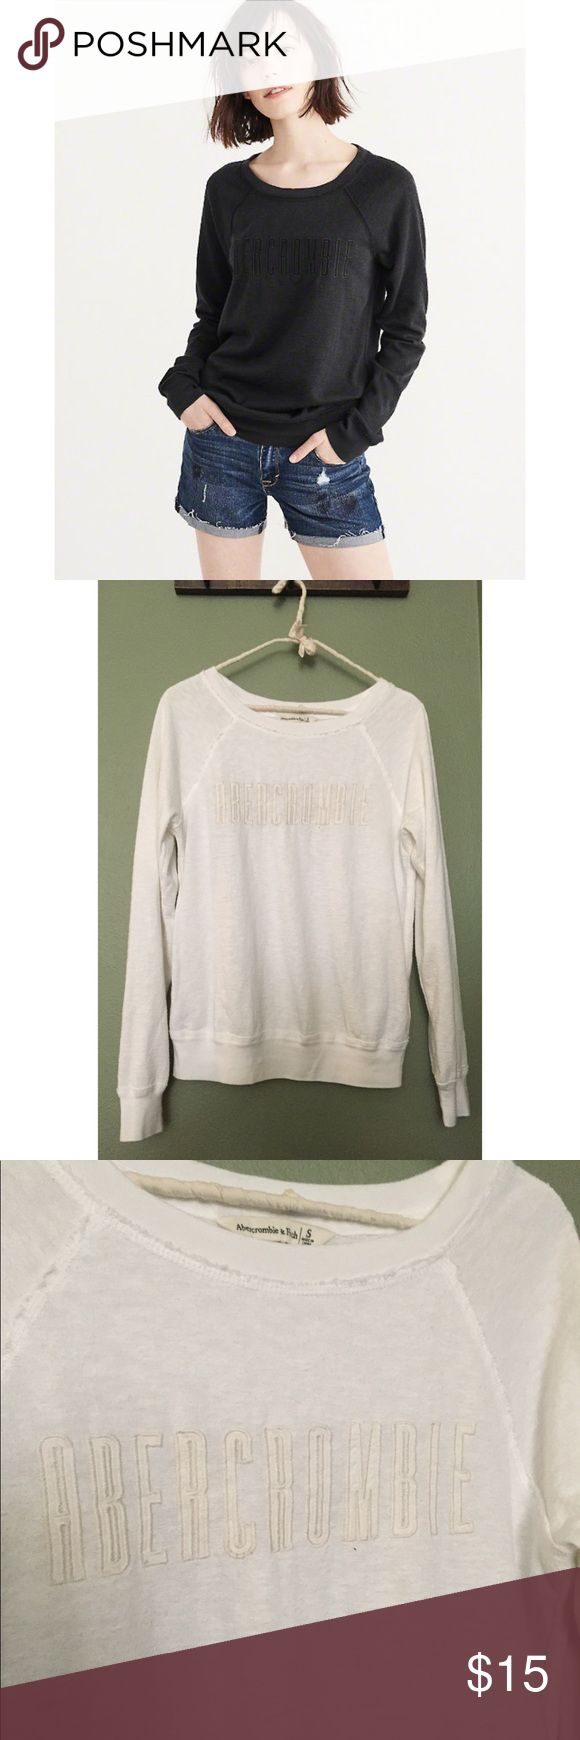 WHITE Abercrombie & Fitch logo crew sweater NWOT This is the white logo crew neck sweater from Abercrombie & Fitch. The model is wearing the same sweater but in black. Never been worn, in perfect condition! Abercrombie & Fitch Sweaters Crew & Scoop Necks